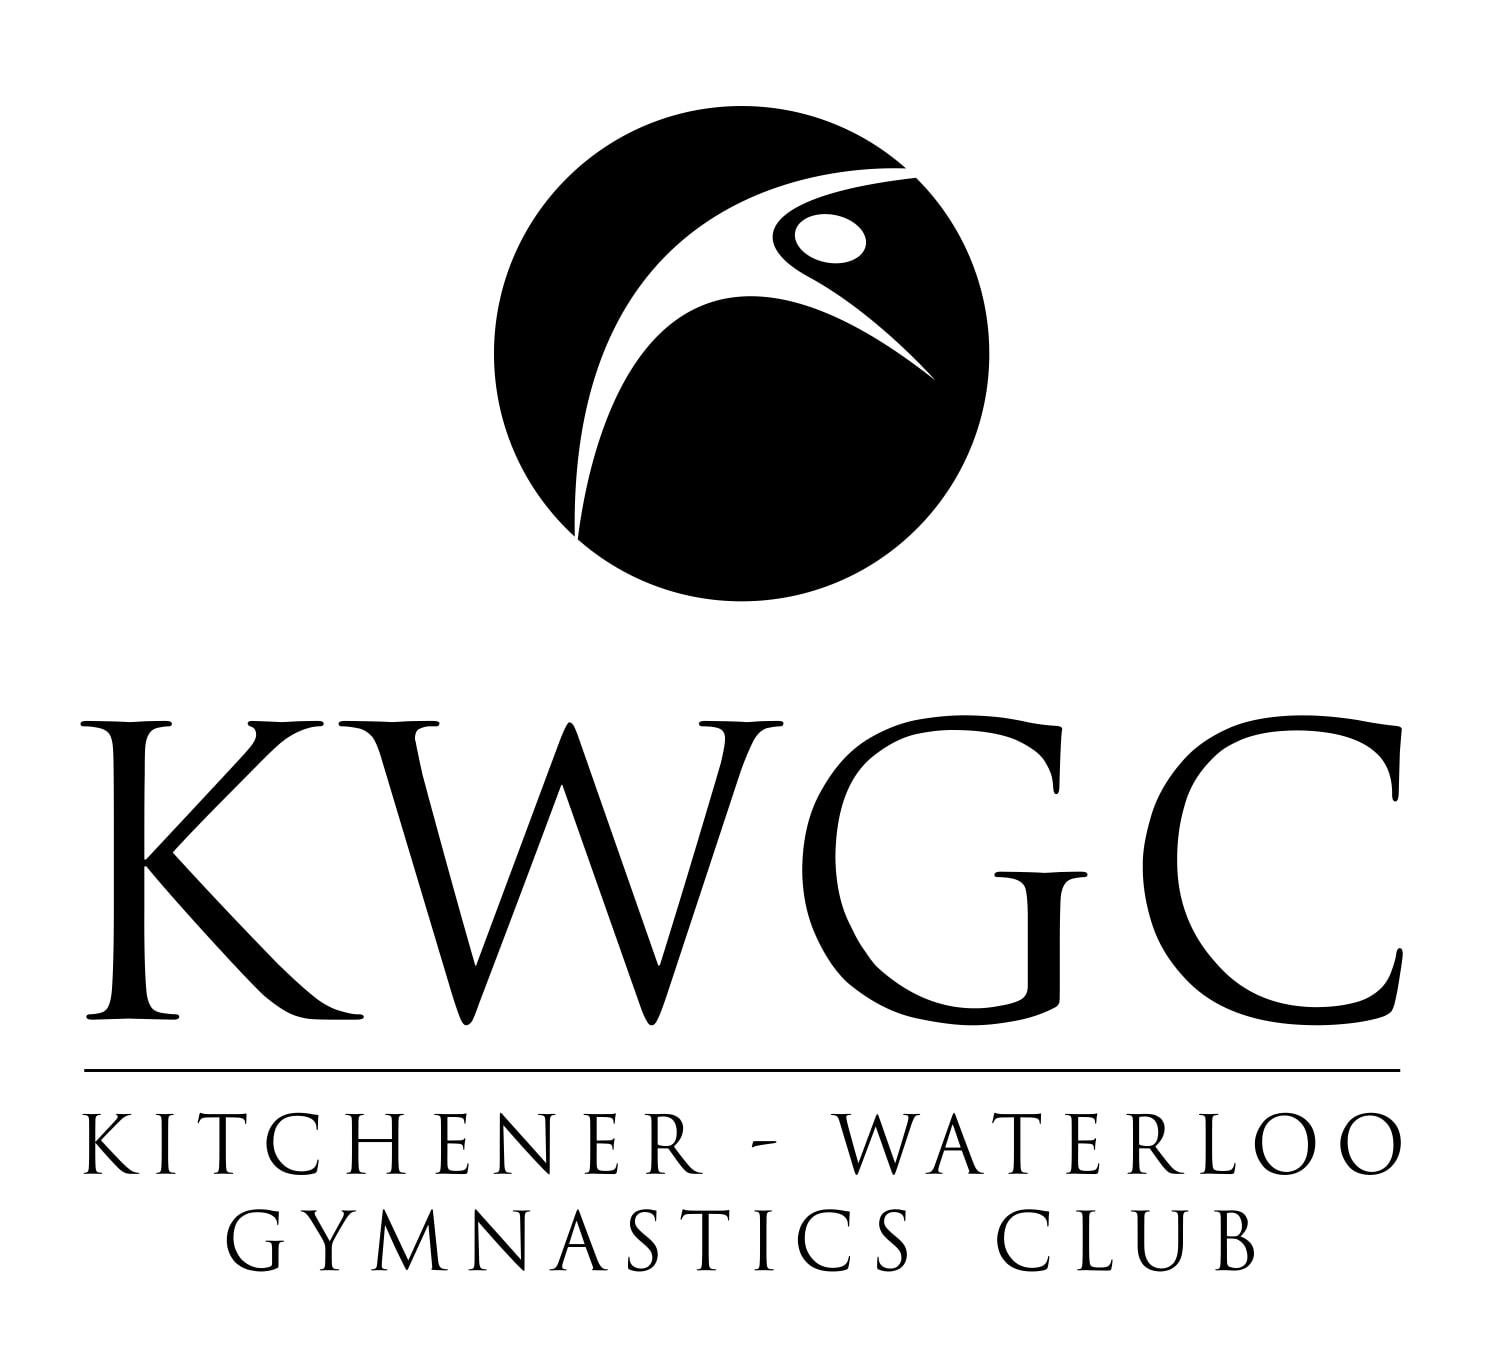 KW Gymnastics Club